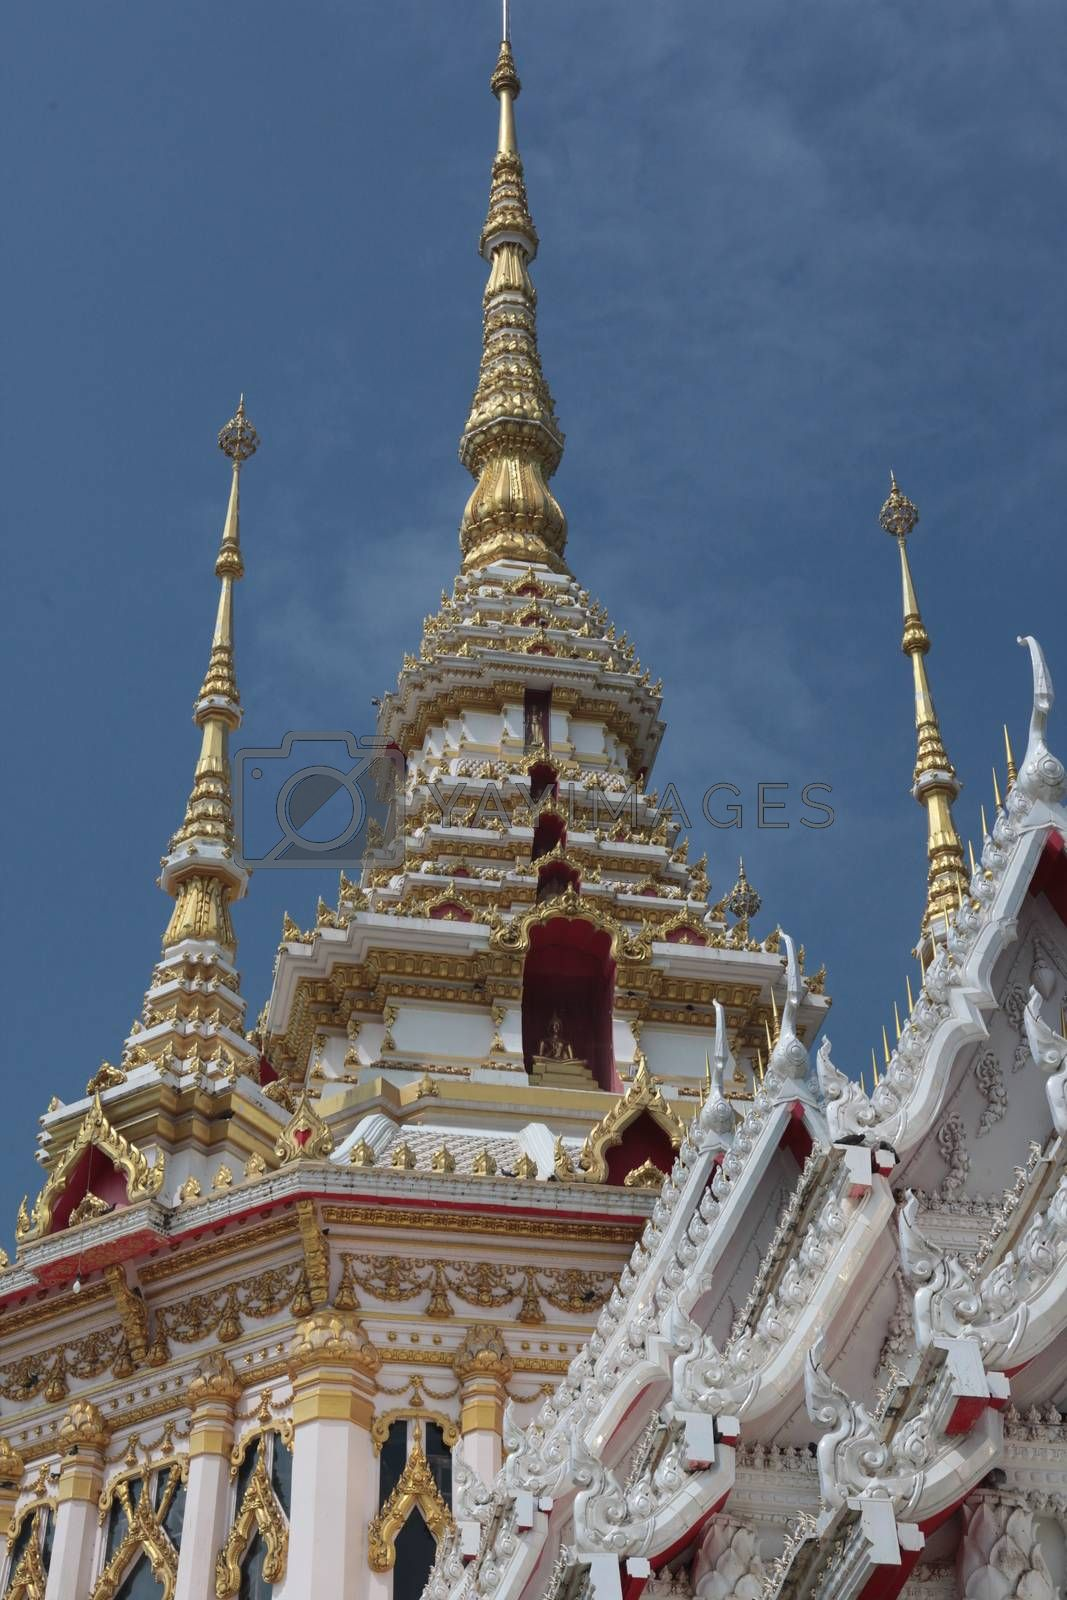 ASIA THAILAND ISAN KHORAT WAT TEMPLE by urf